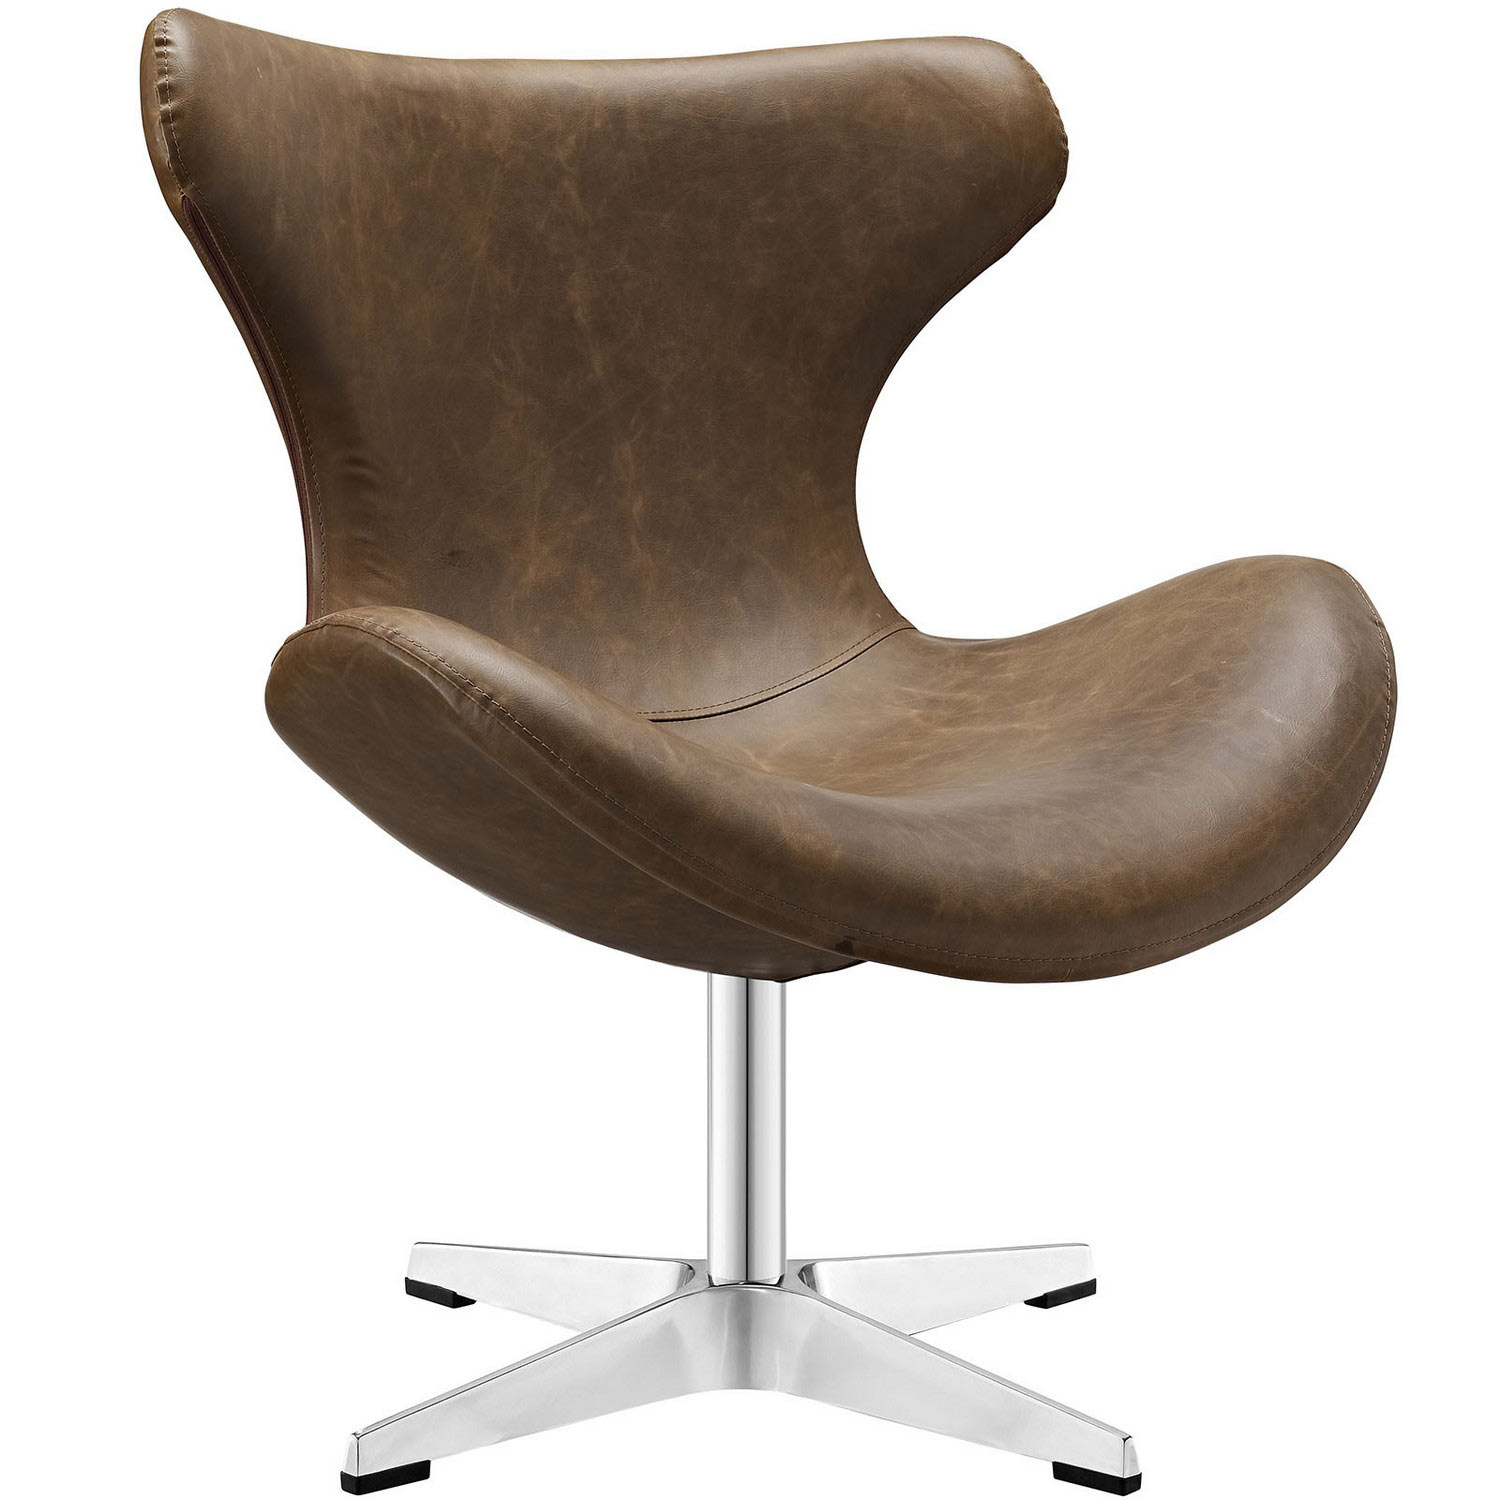 Modway Helm Lounge Chair - Brown